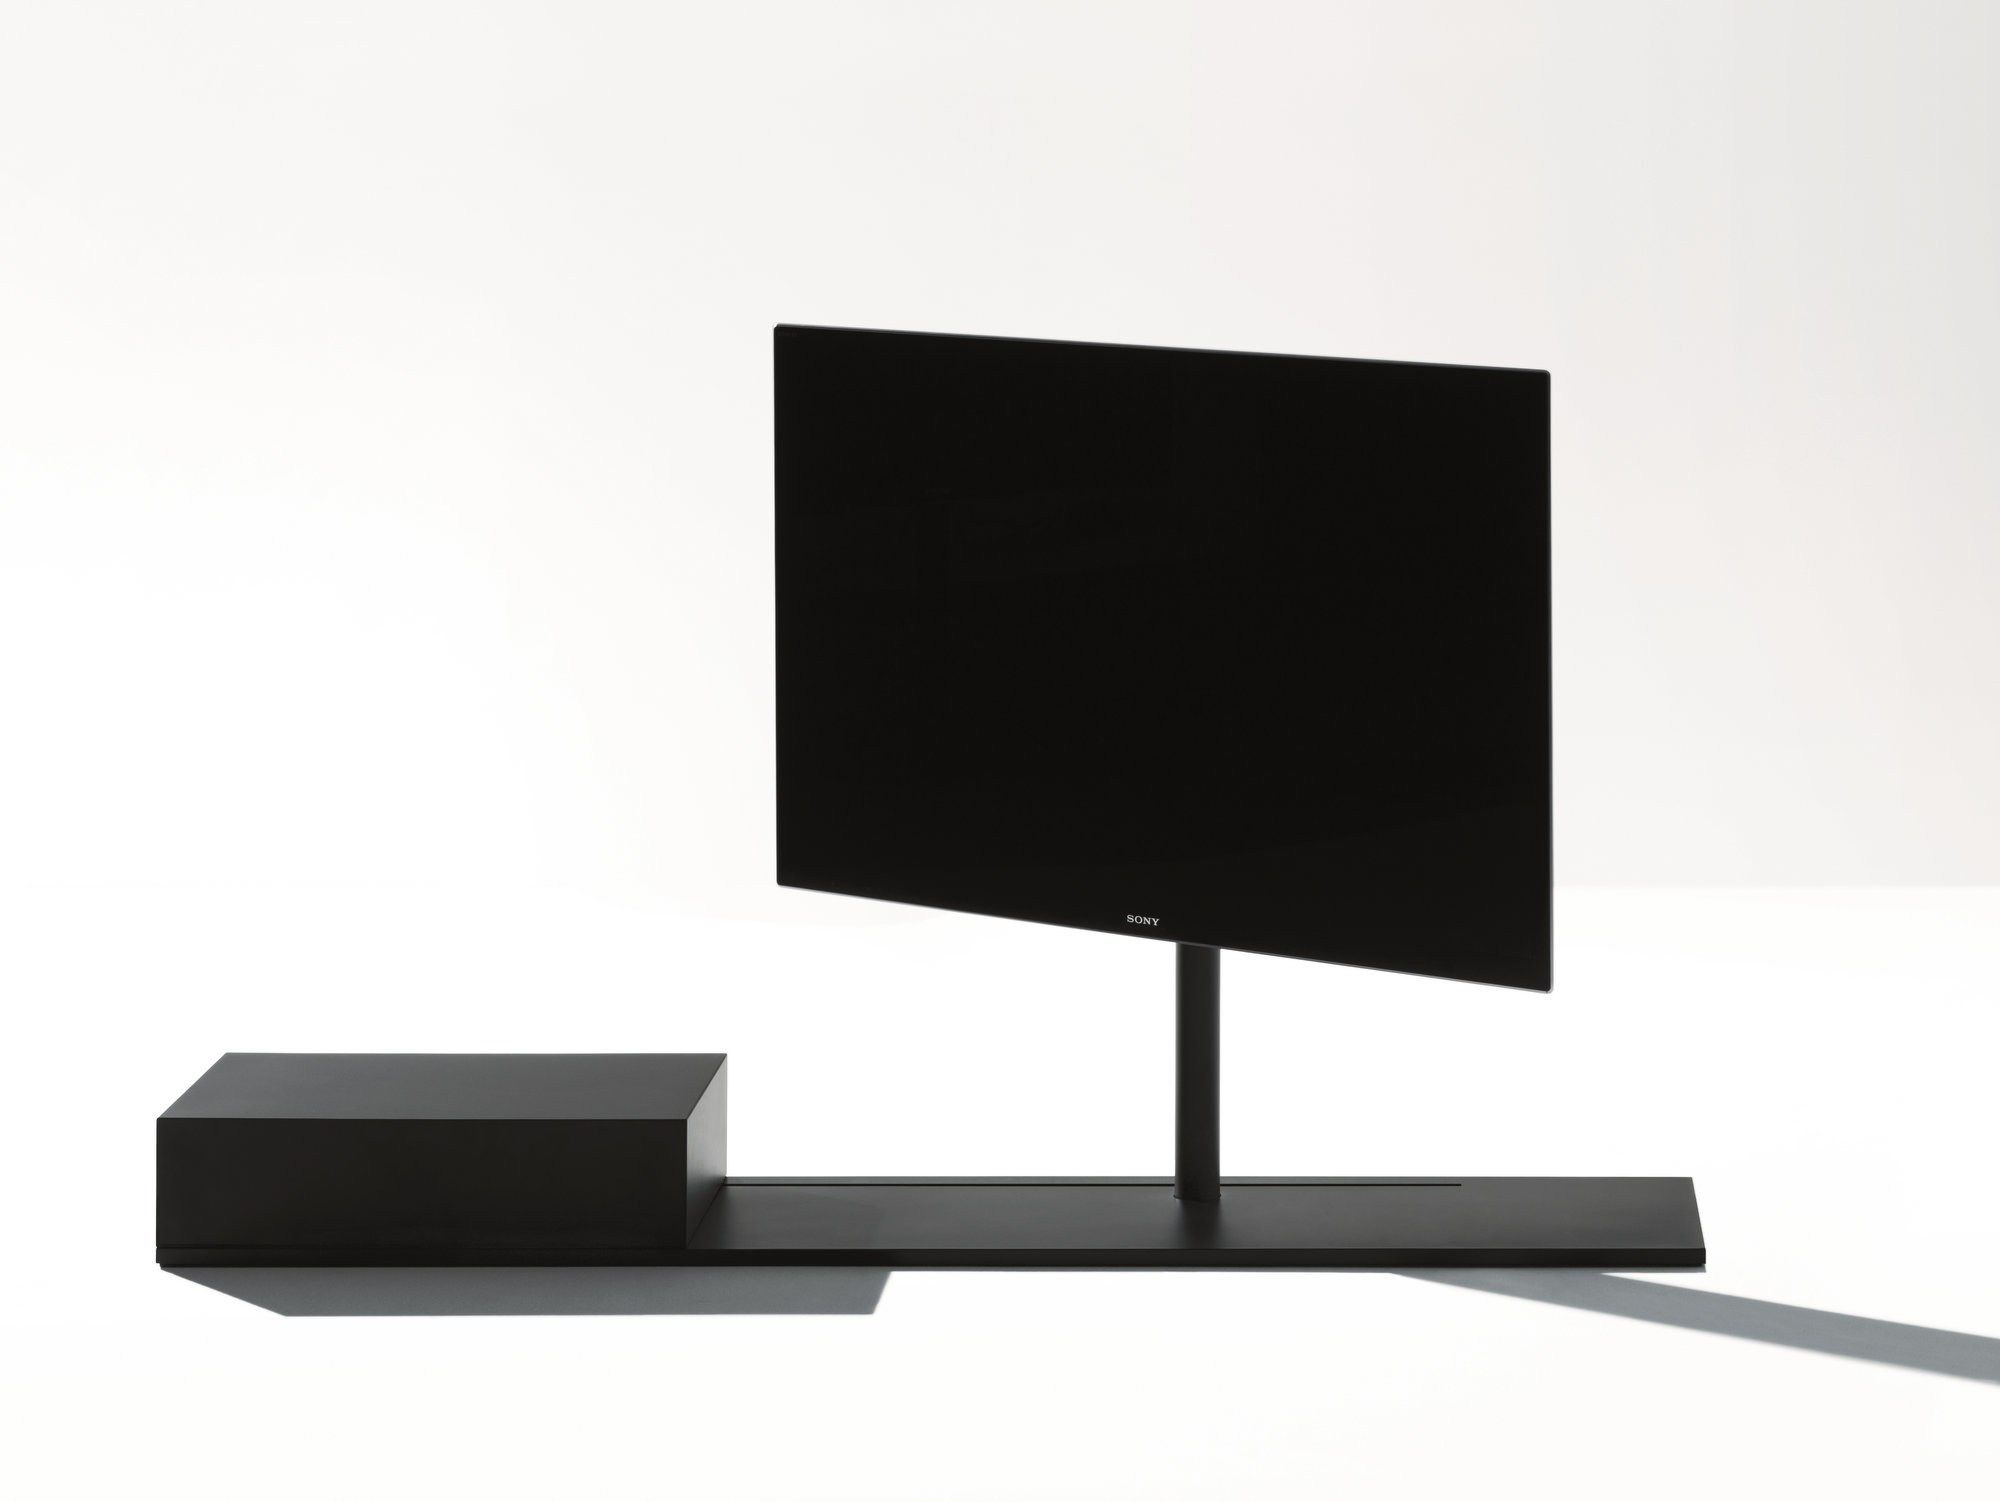 Meuble Tv Pivotant Design Meuble Tv Pivotant En Métal Sail 302 By Desalto Design Caronni